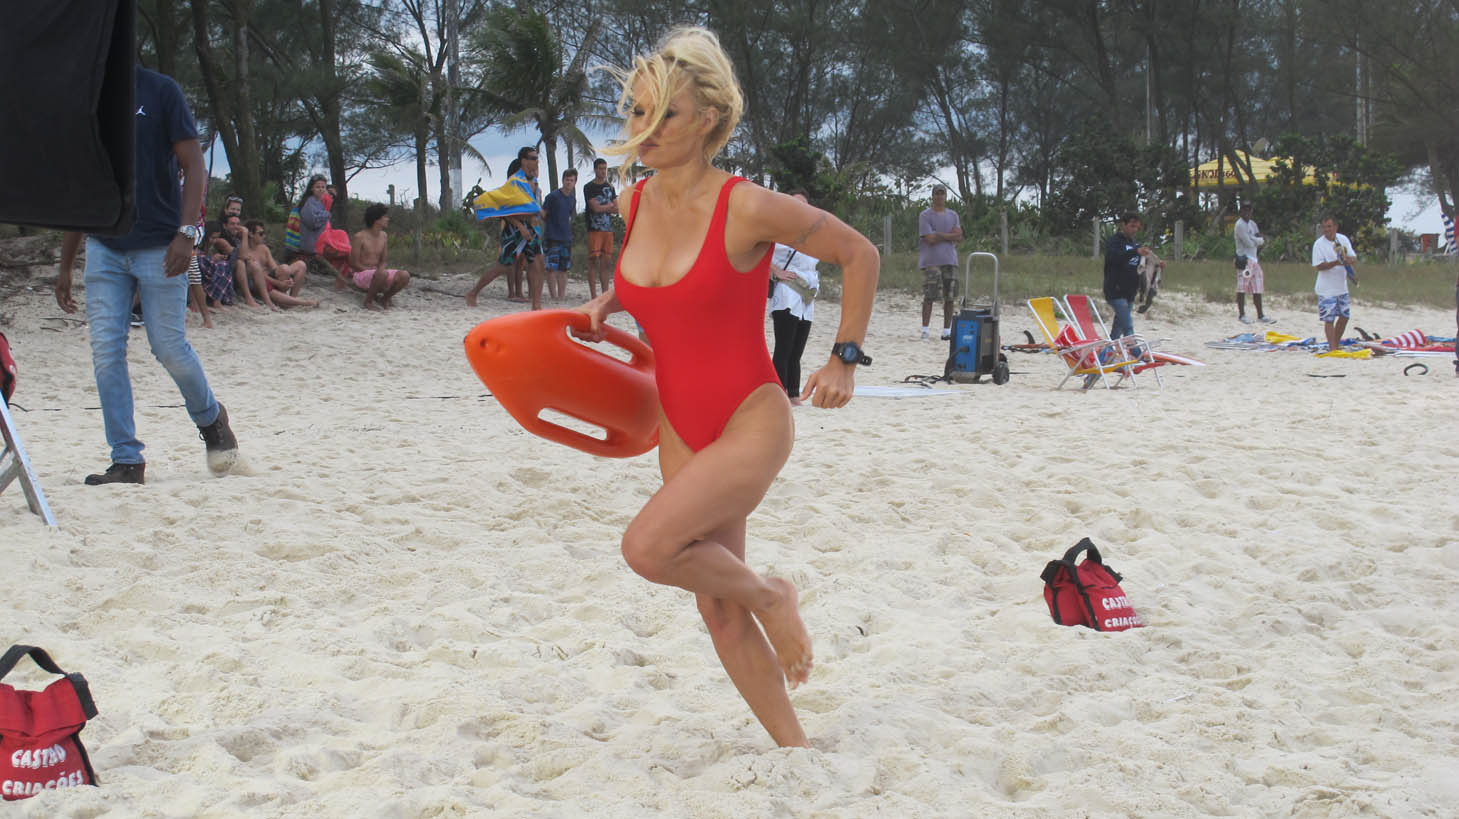 Image result for Pamela anderson baywatch running on beach